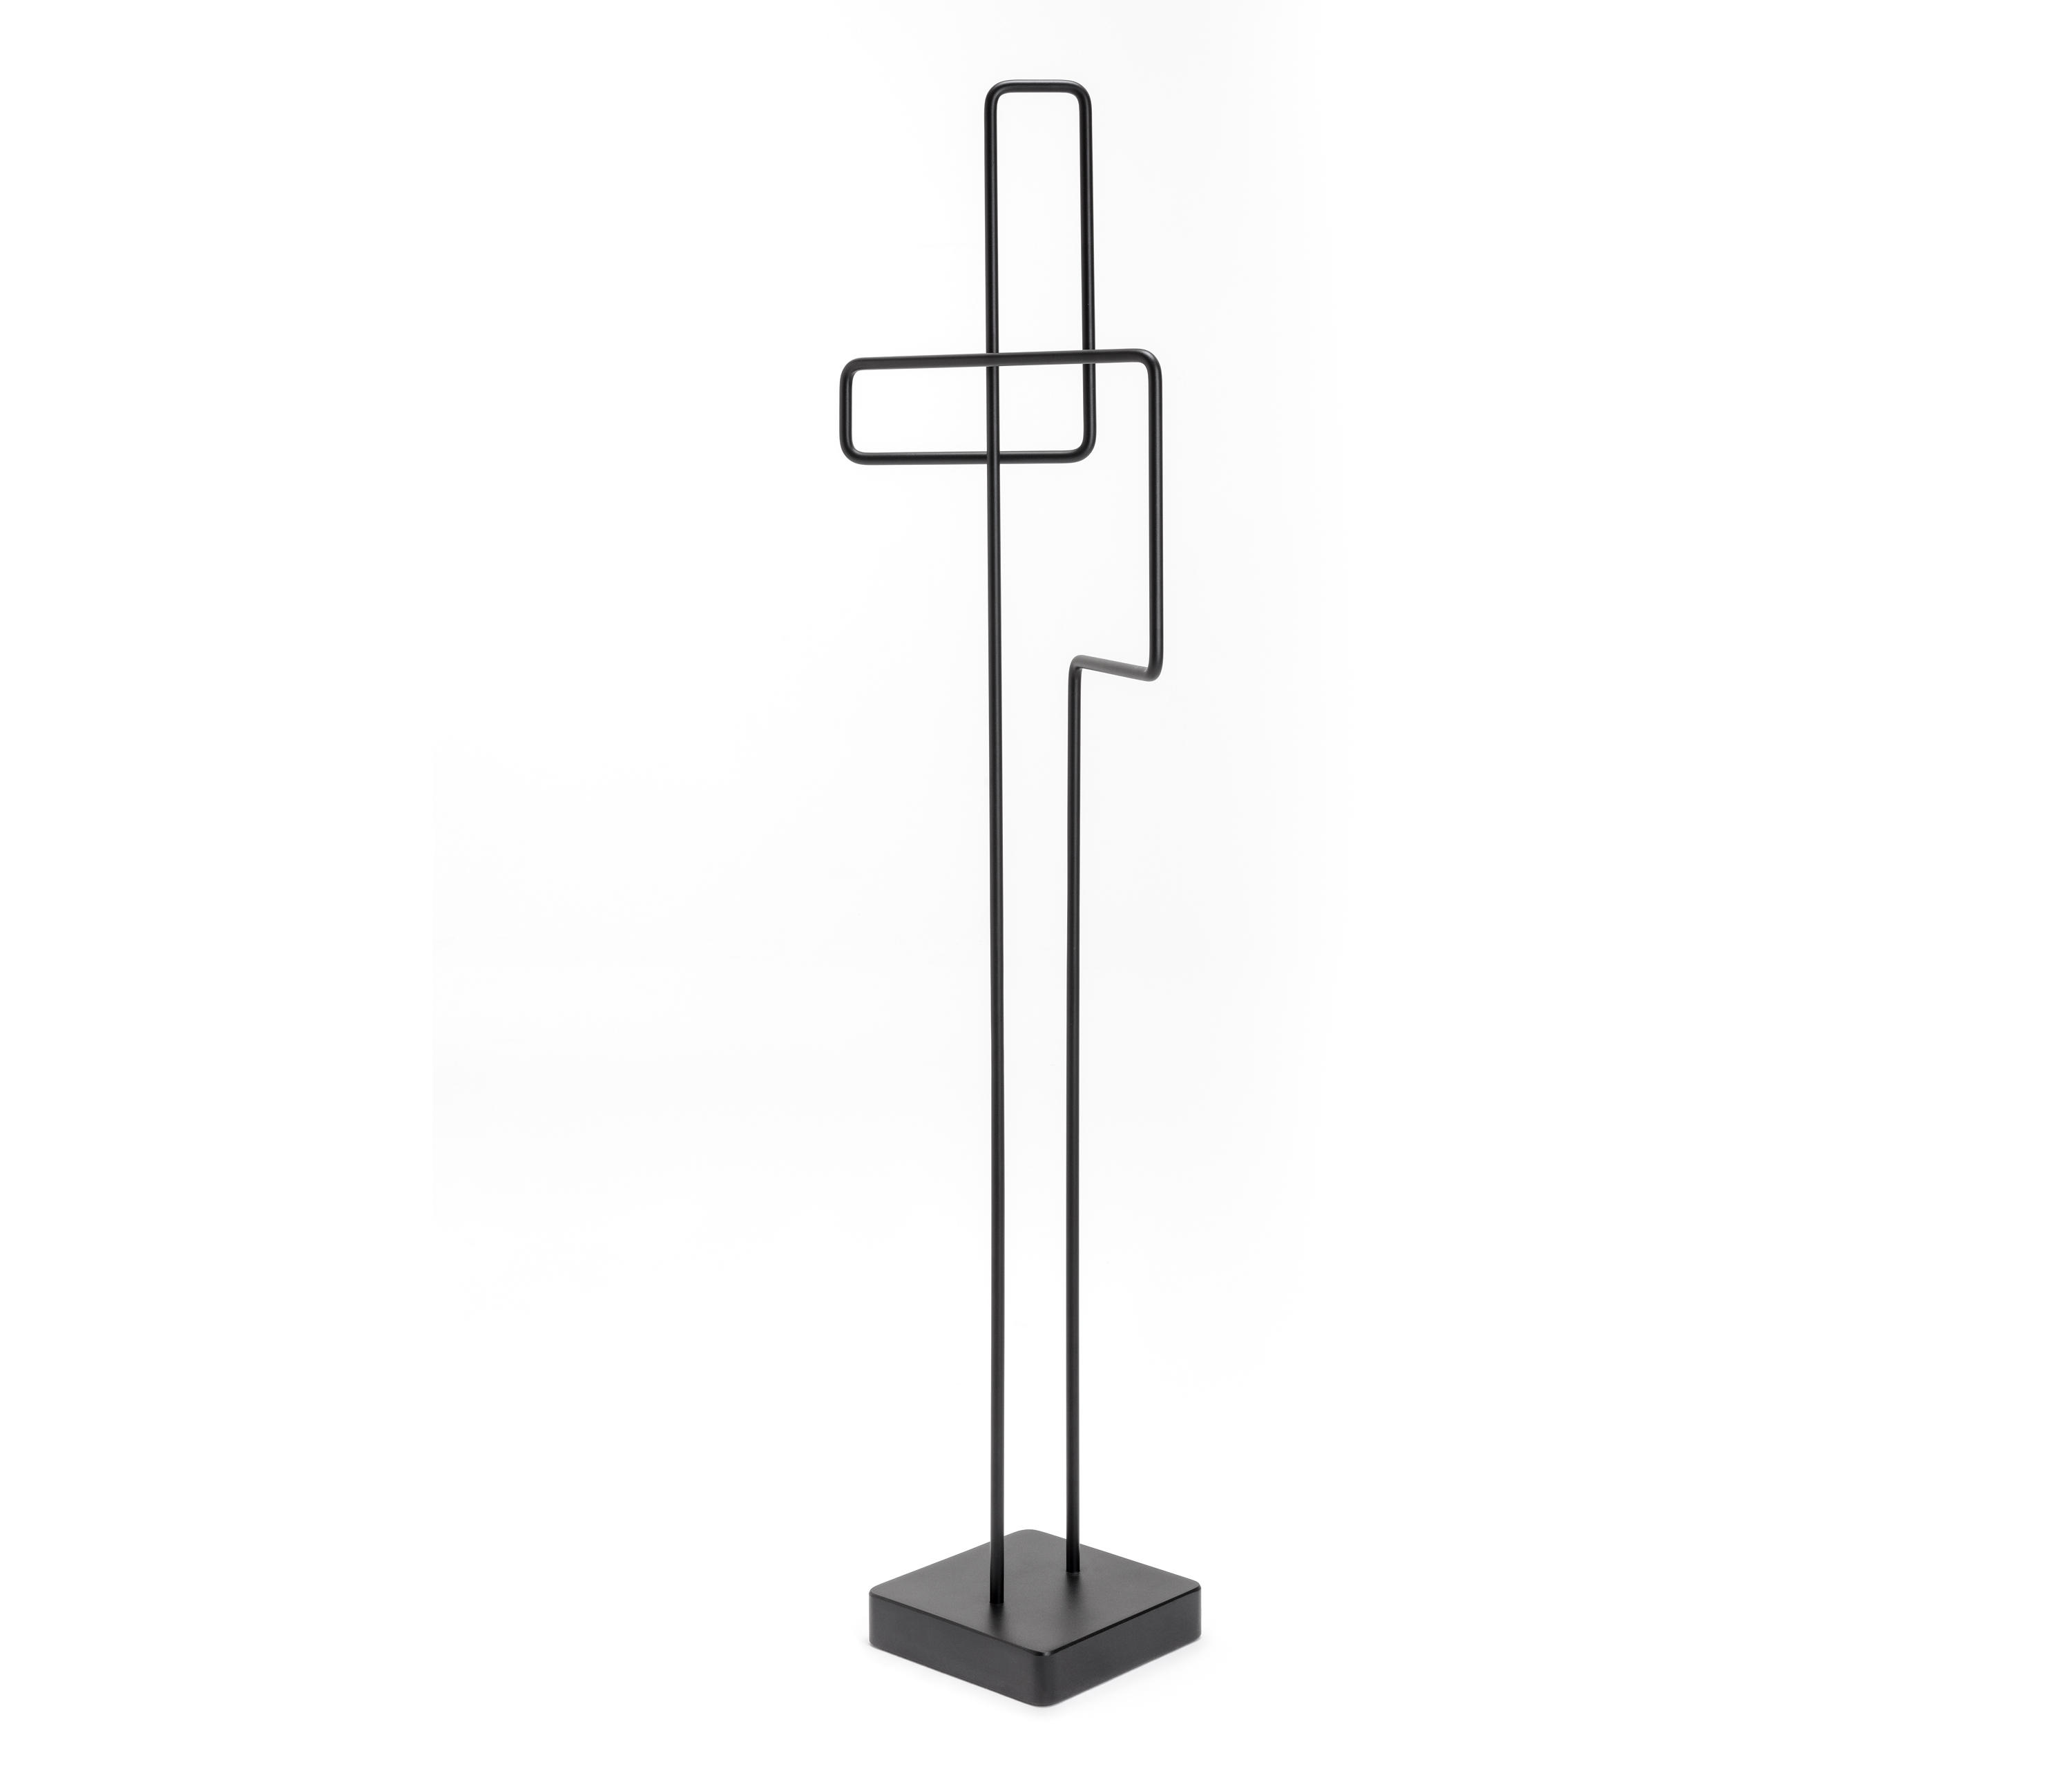 Rolf Benz 908 Clothes Racks From Rolf Benz Architonic